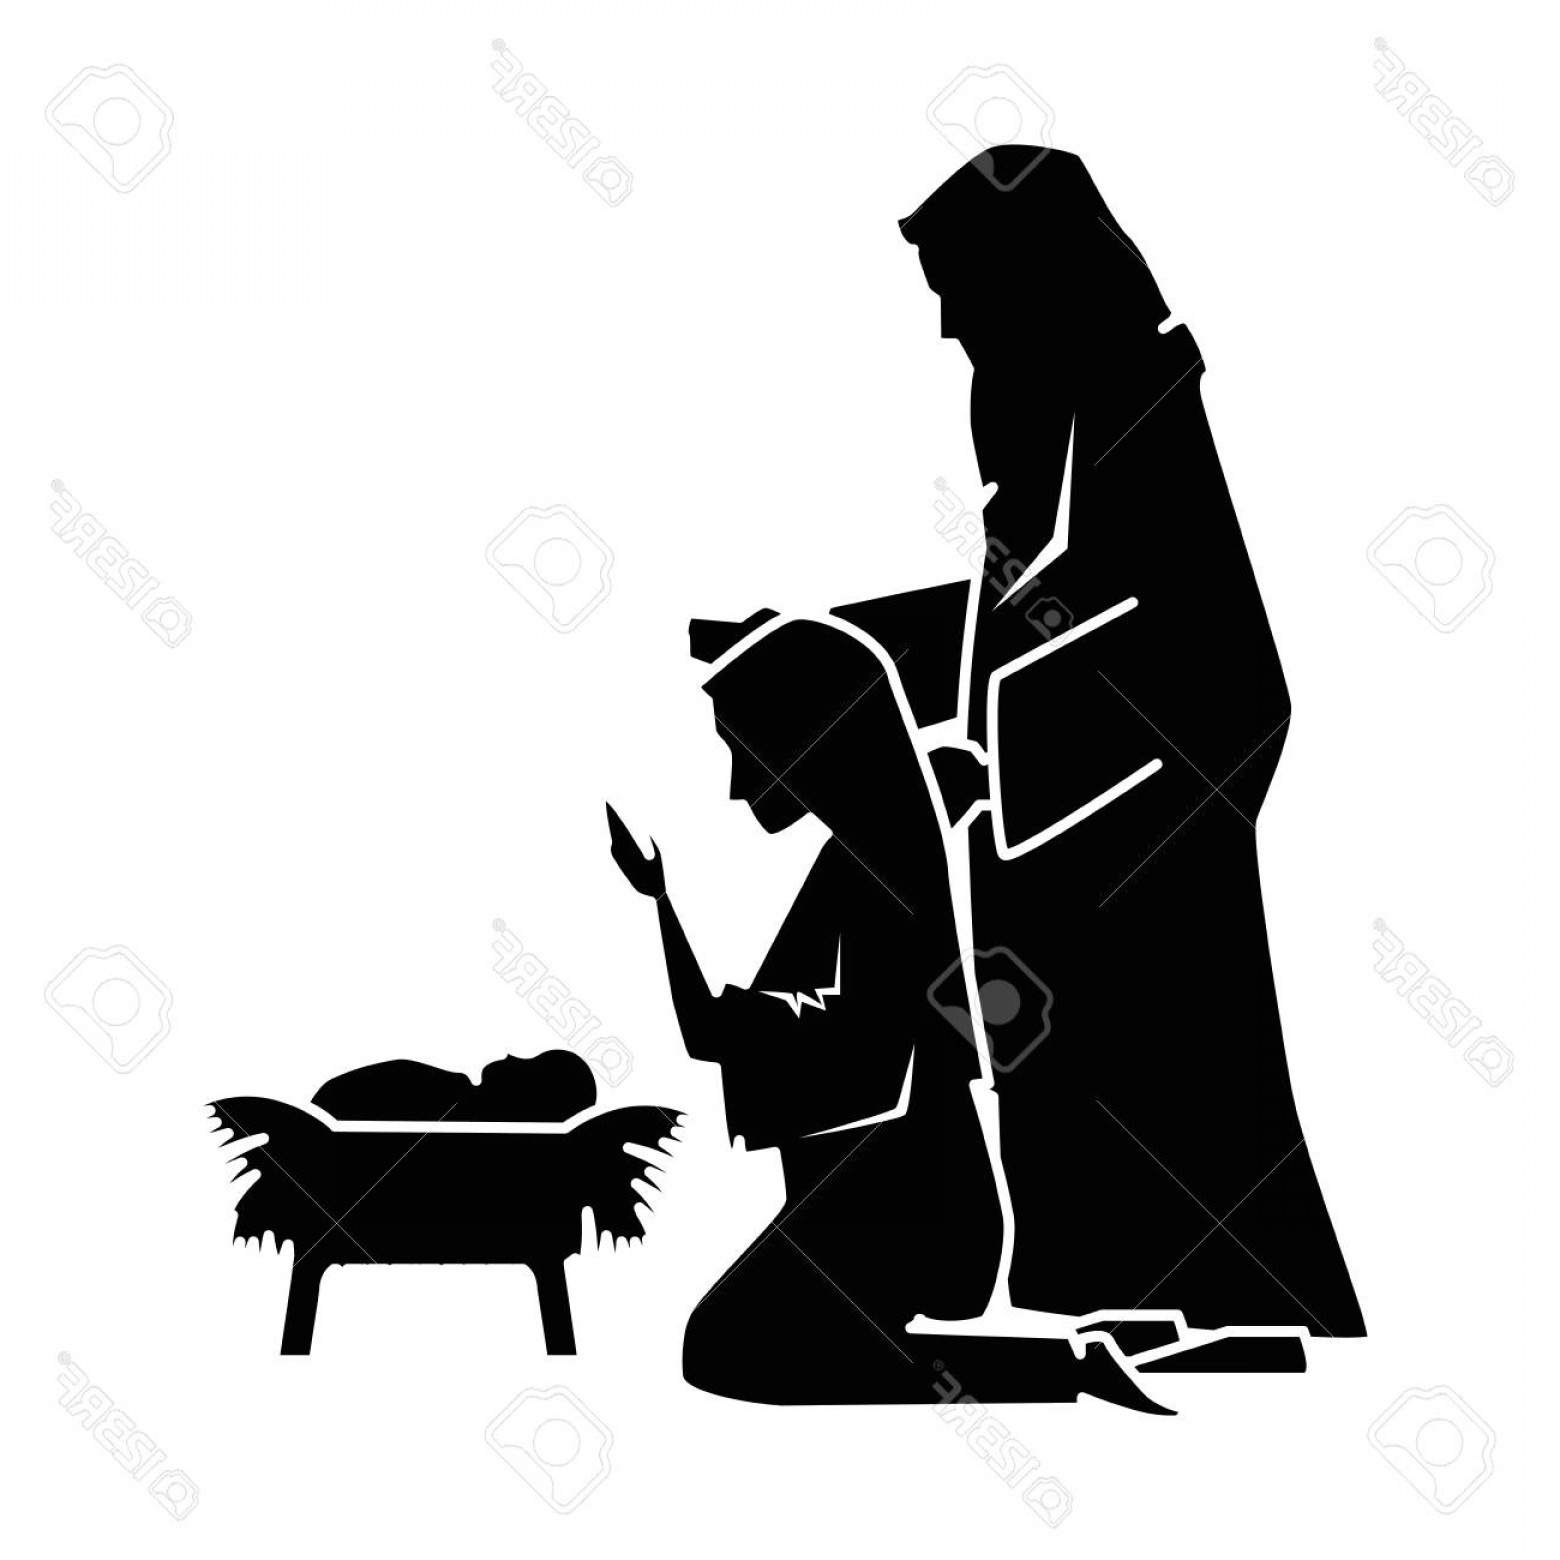 Family Silhouette Vector Art: Photostock Vector A Holy Family Silhouette Christmas Characters Vector Illustration Design